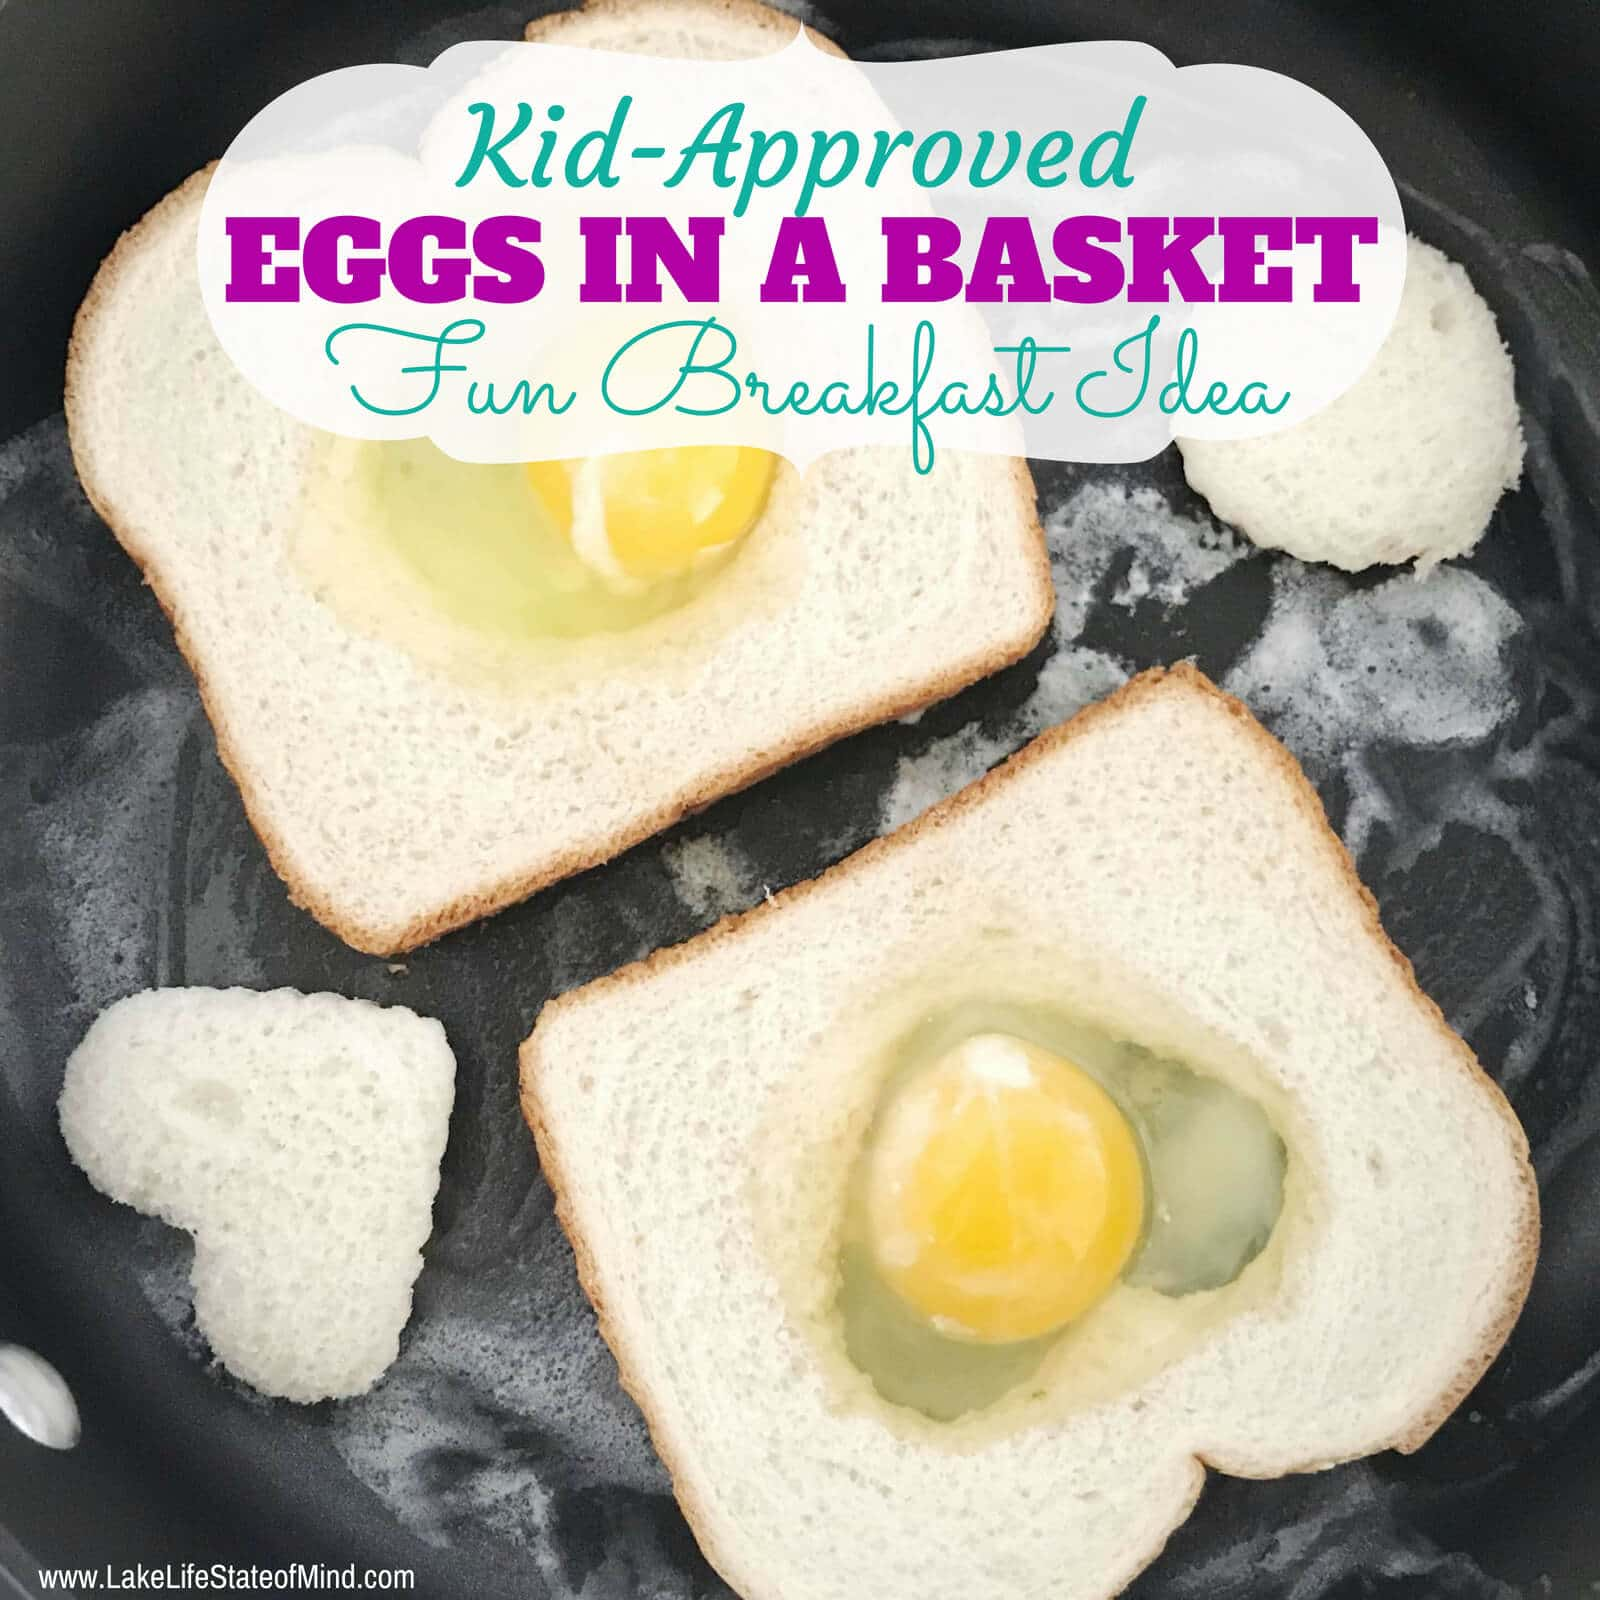 Eggs In A Basket Fun And Easy Egg Breakfast For The Family